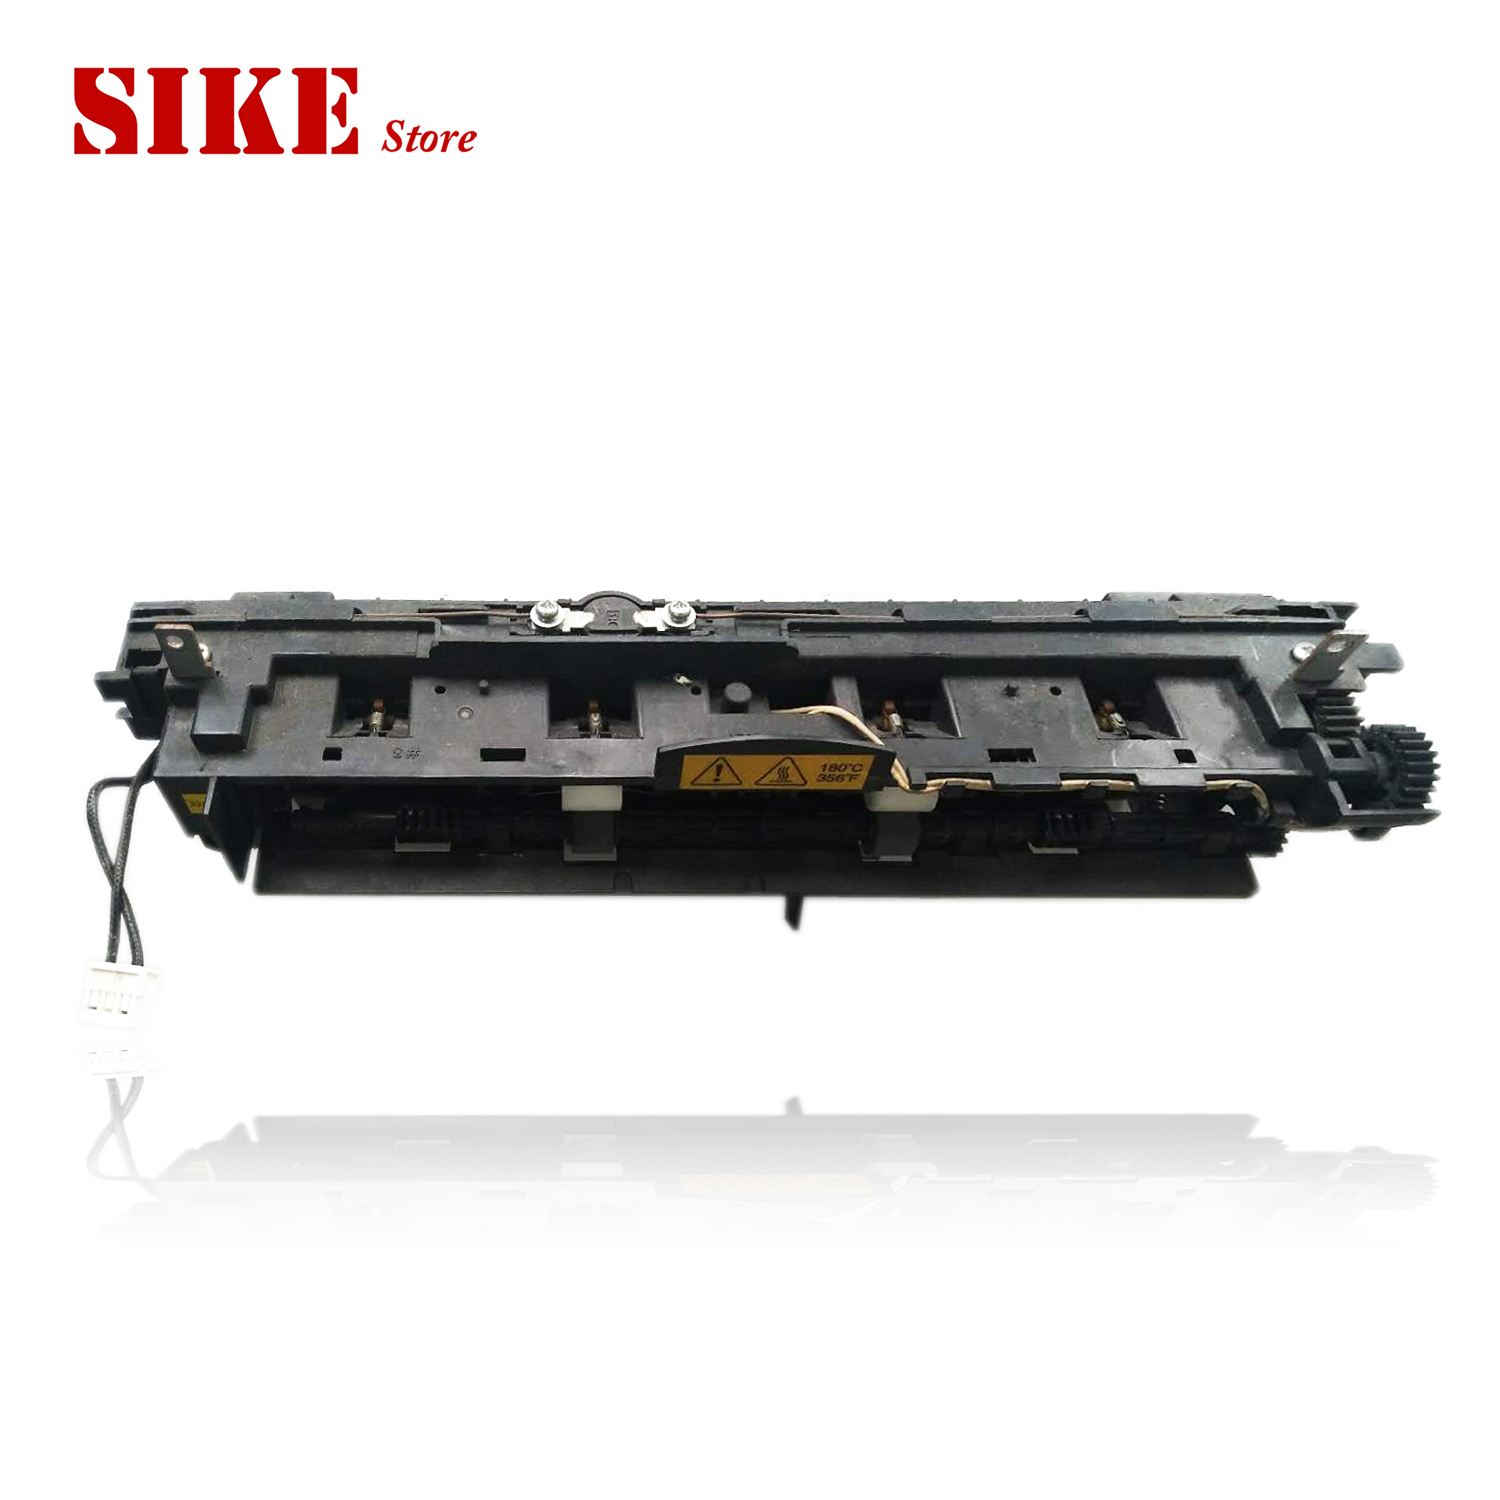 Fuser Unit Assy For Samsung <font><b>ML</b></font>-1510 <font><b>ML</b></font>-<font><b>1520</b></font> ML1510 ML1520 <font><b>ML</b></font> 1510 <font><b>1520</b></font> Fuser Assembly JC96-02661A JC63-00105A image